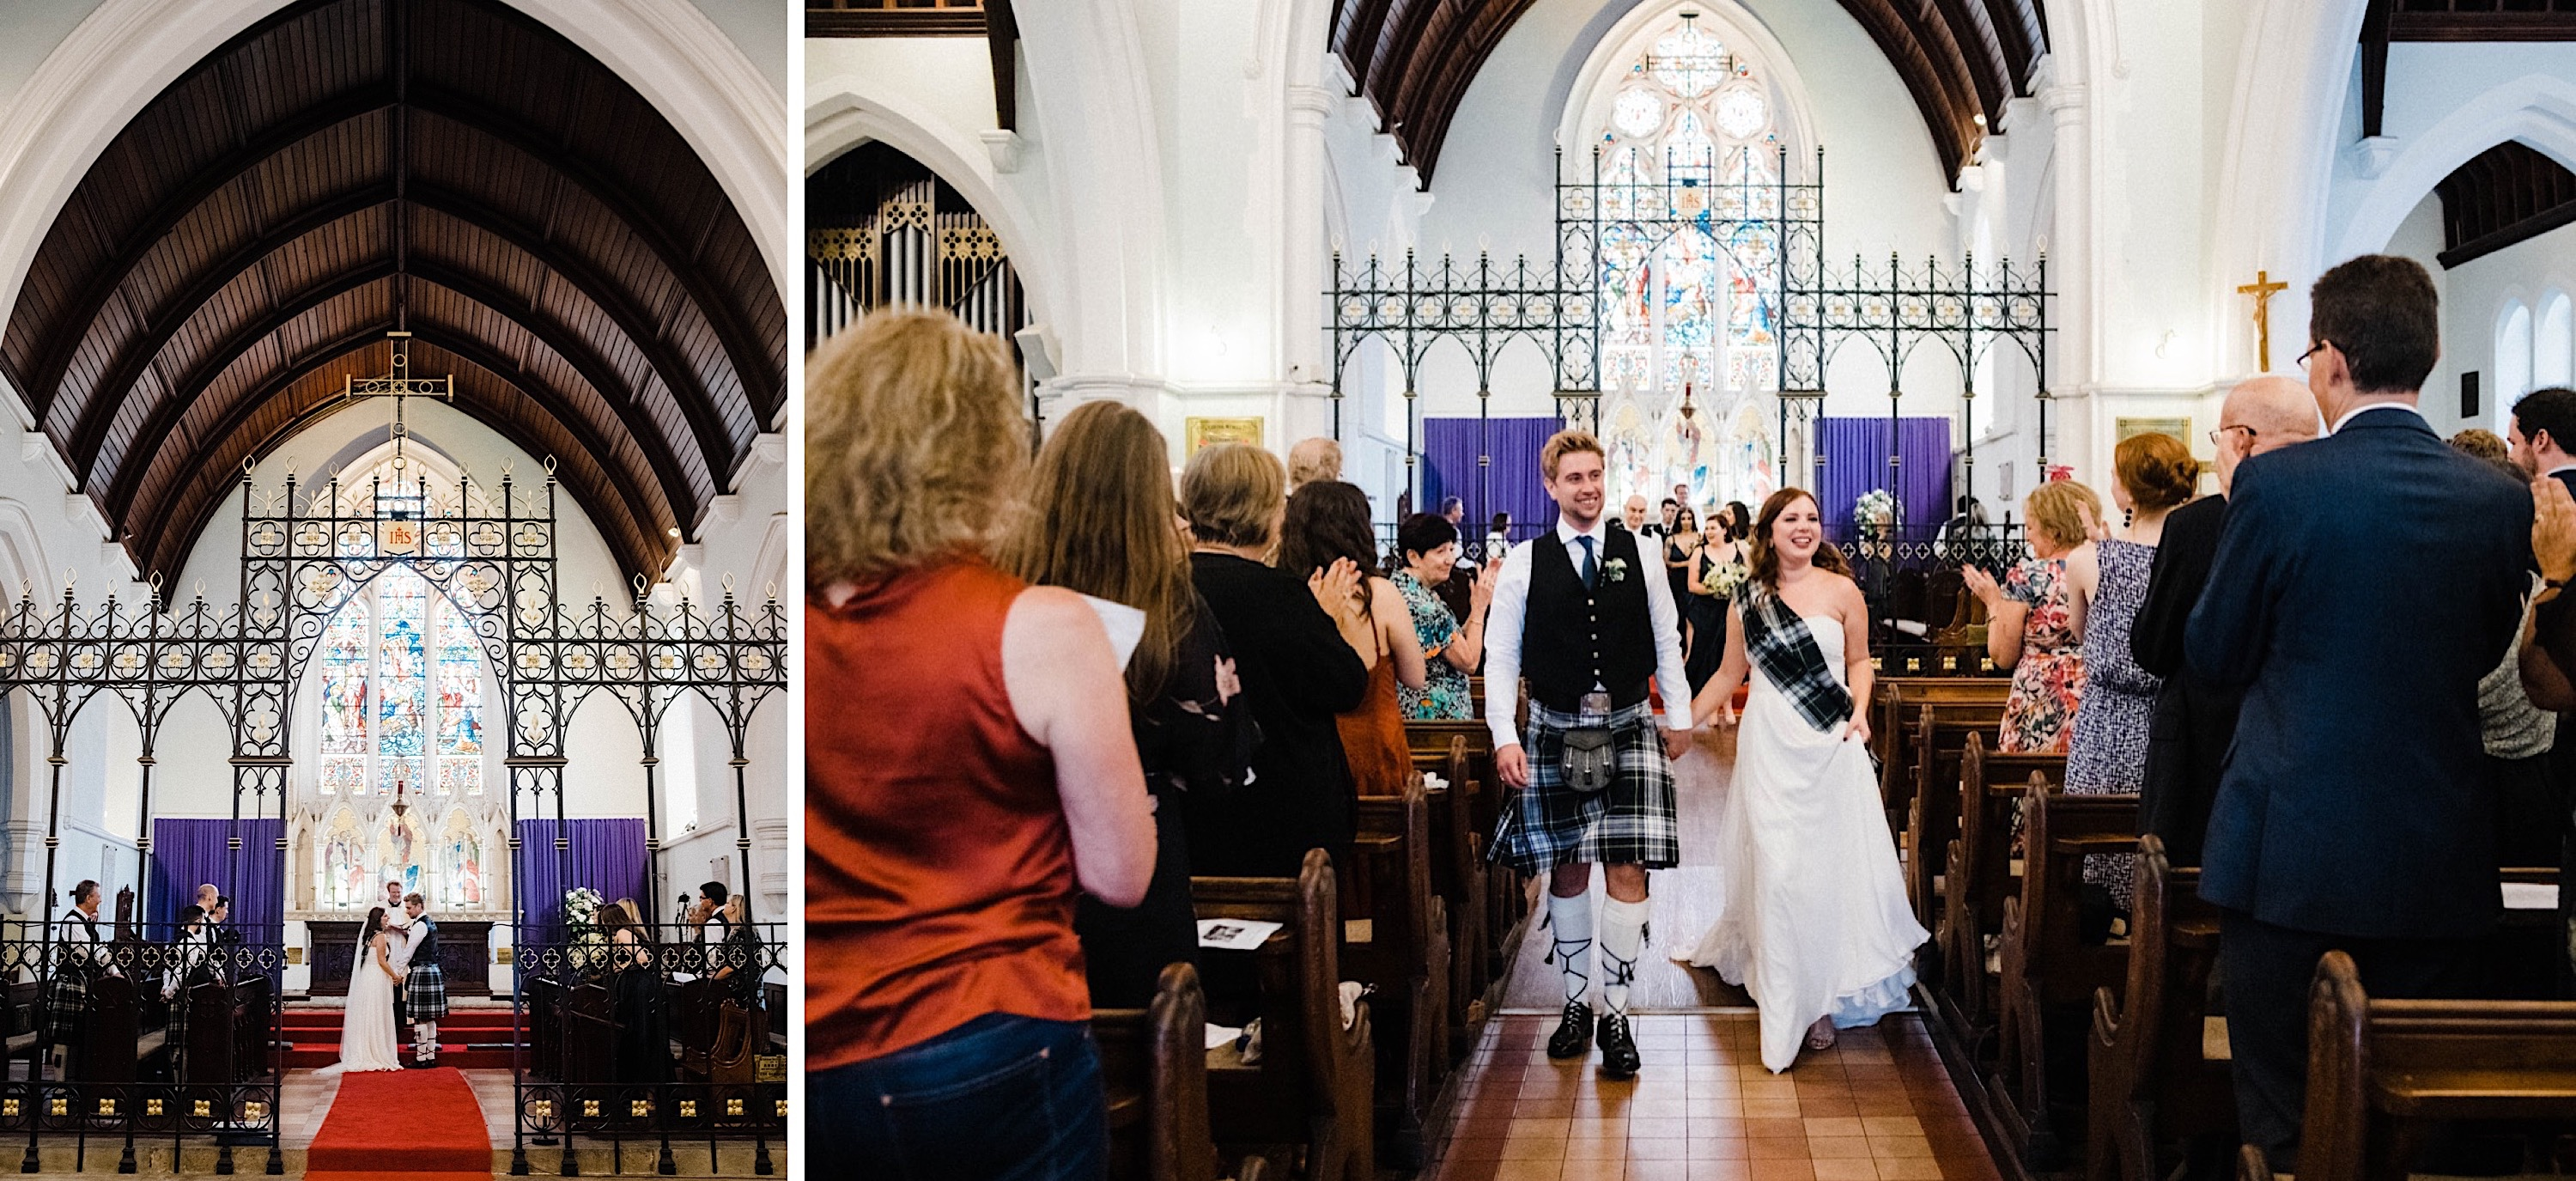 Documentary wedding photography of the bride & groom walking back down the aisle after their Wedding Ceremony at St John's Anglican Church.